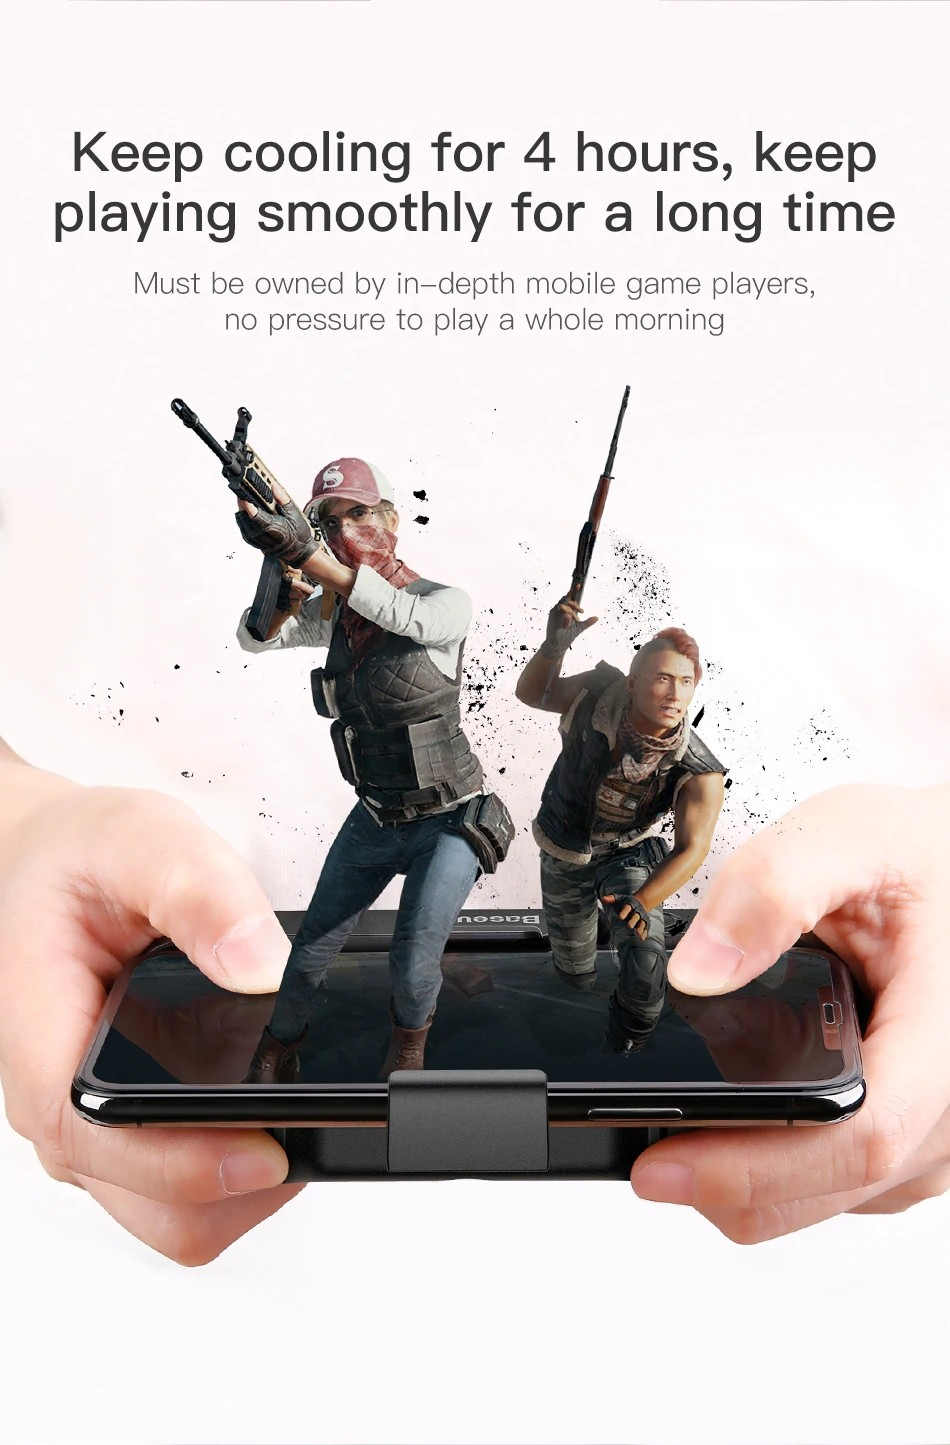 Baseus Mobile Phone Cooler Gamepad (4)